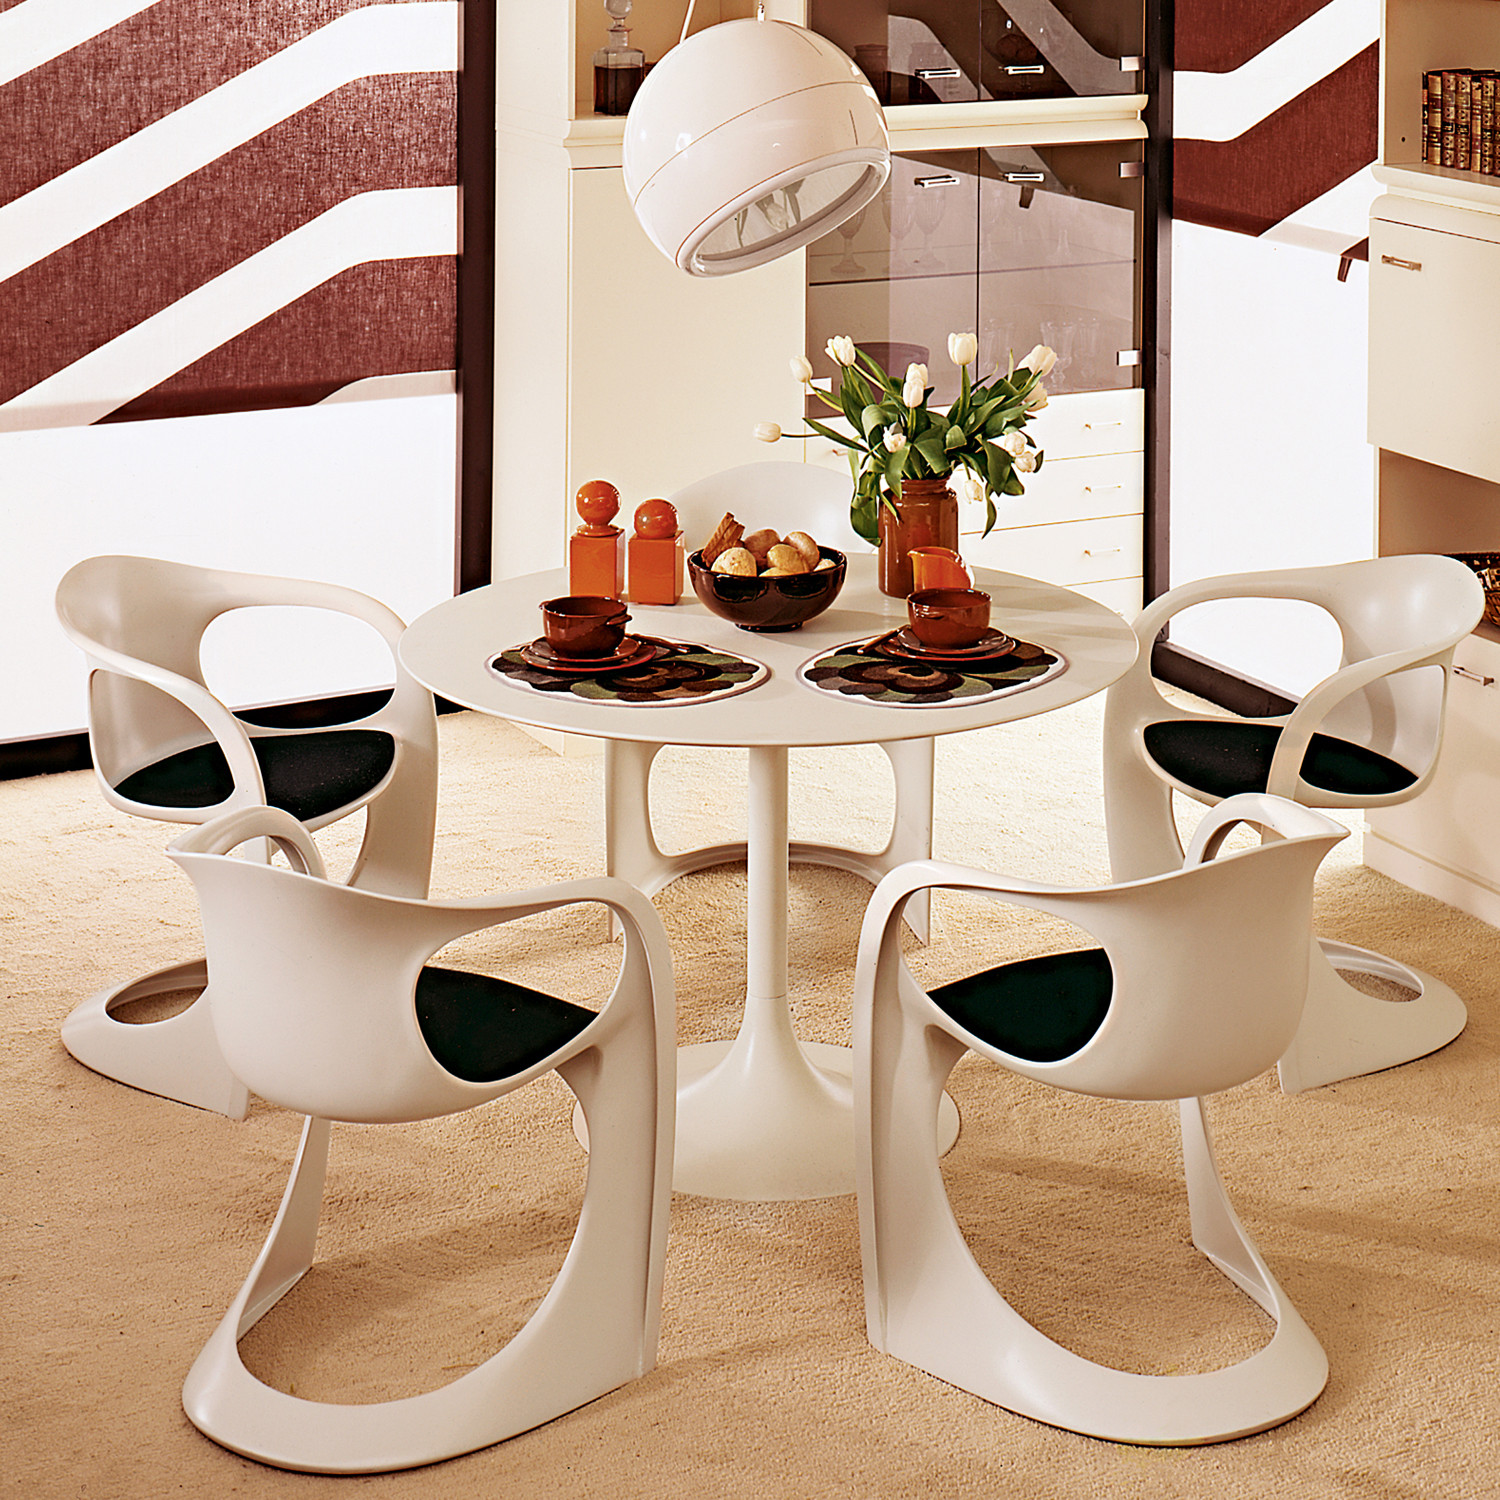 Casalino 2007 Chairs by Casala